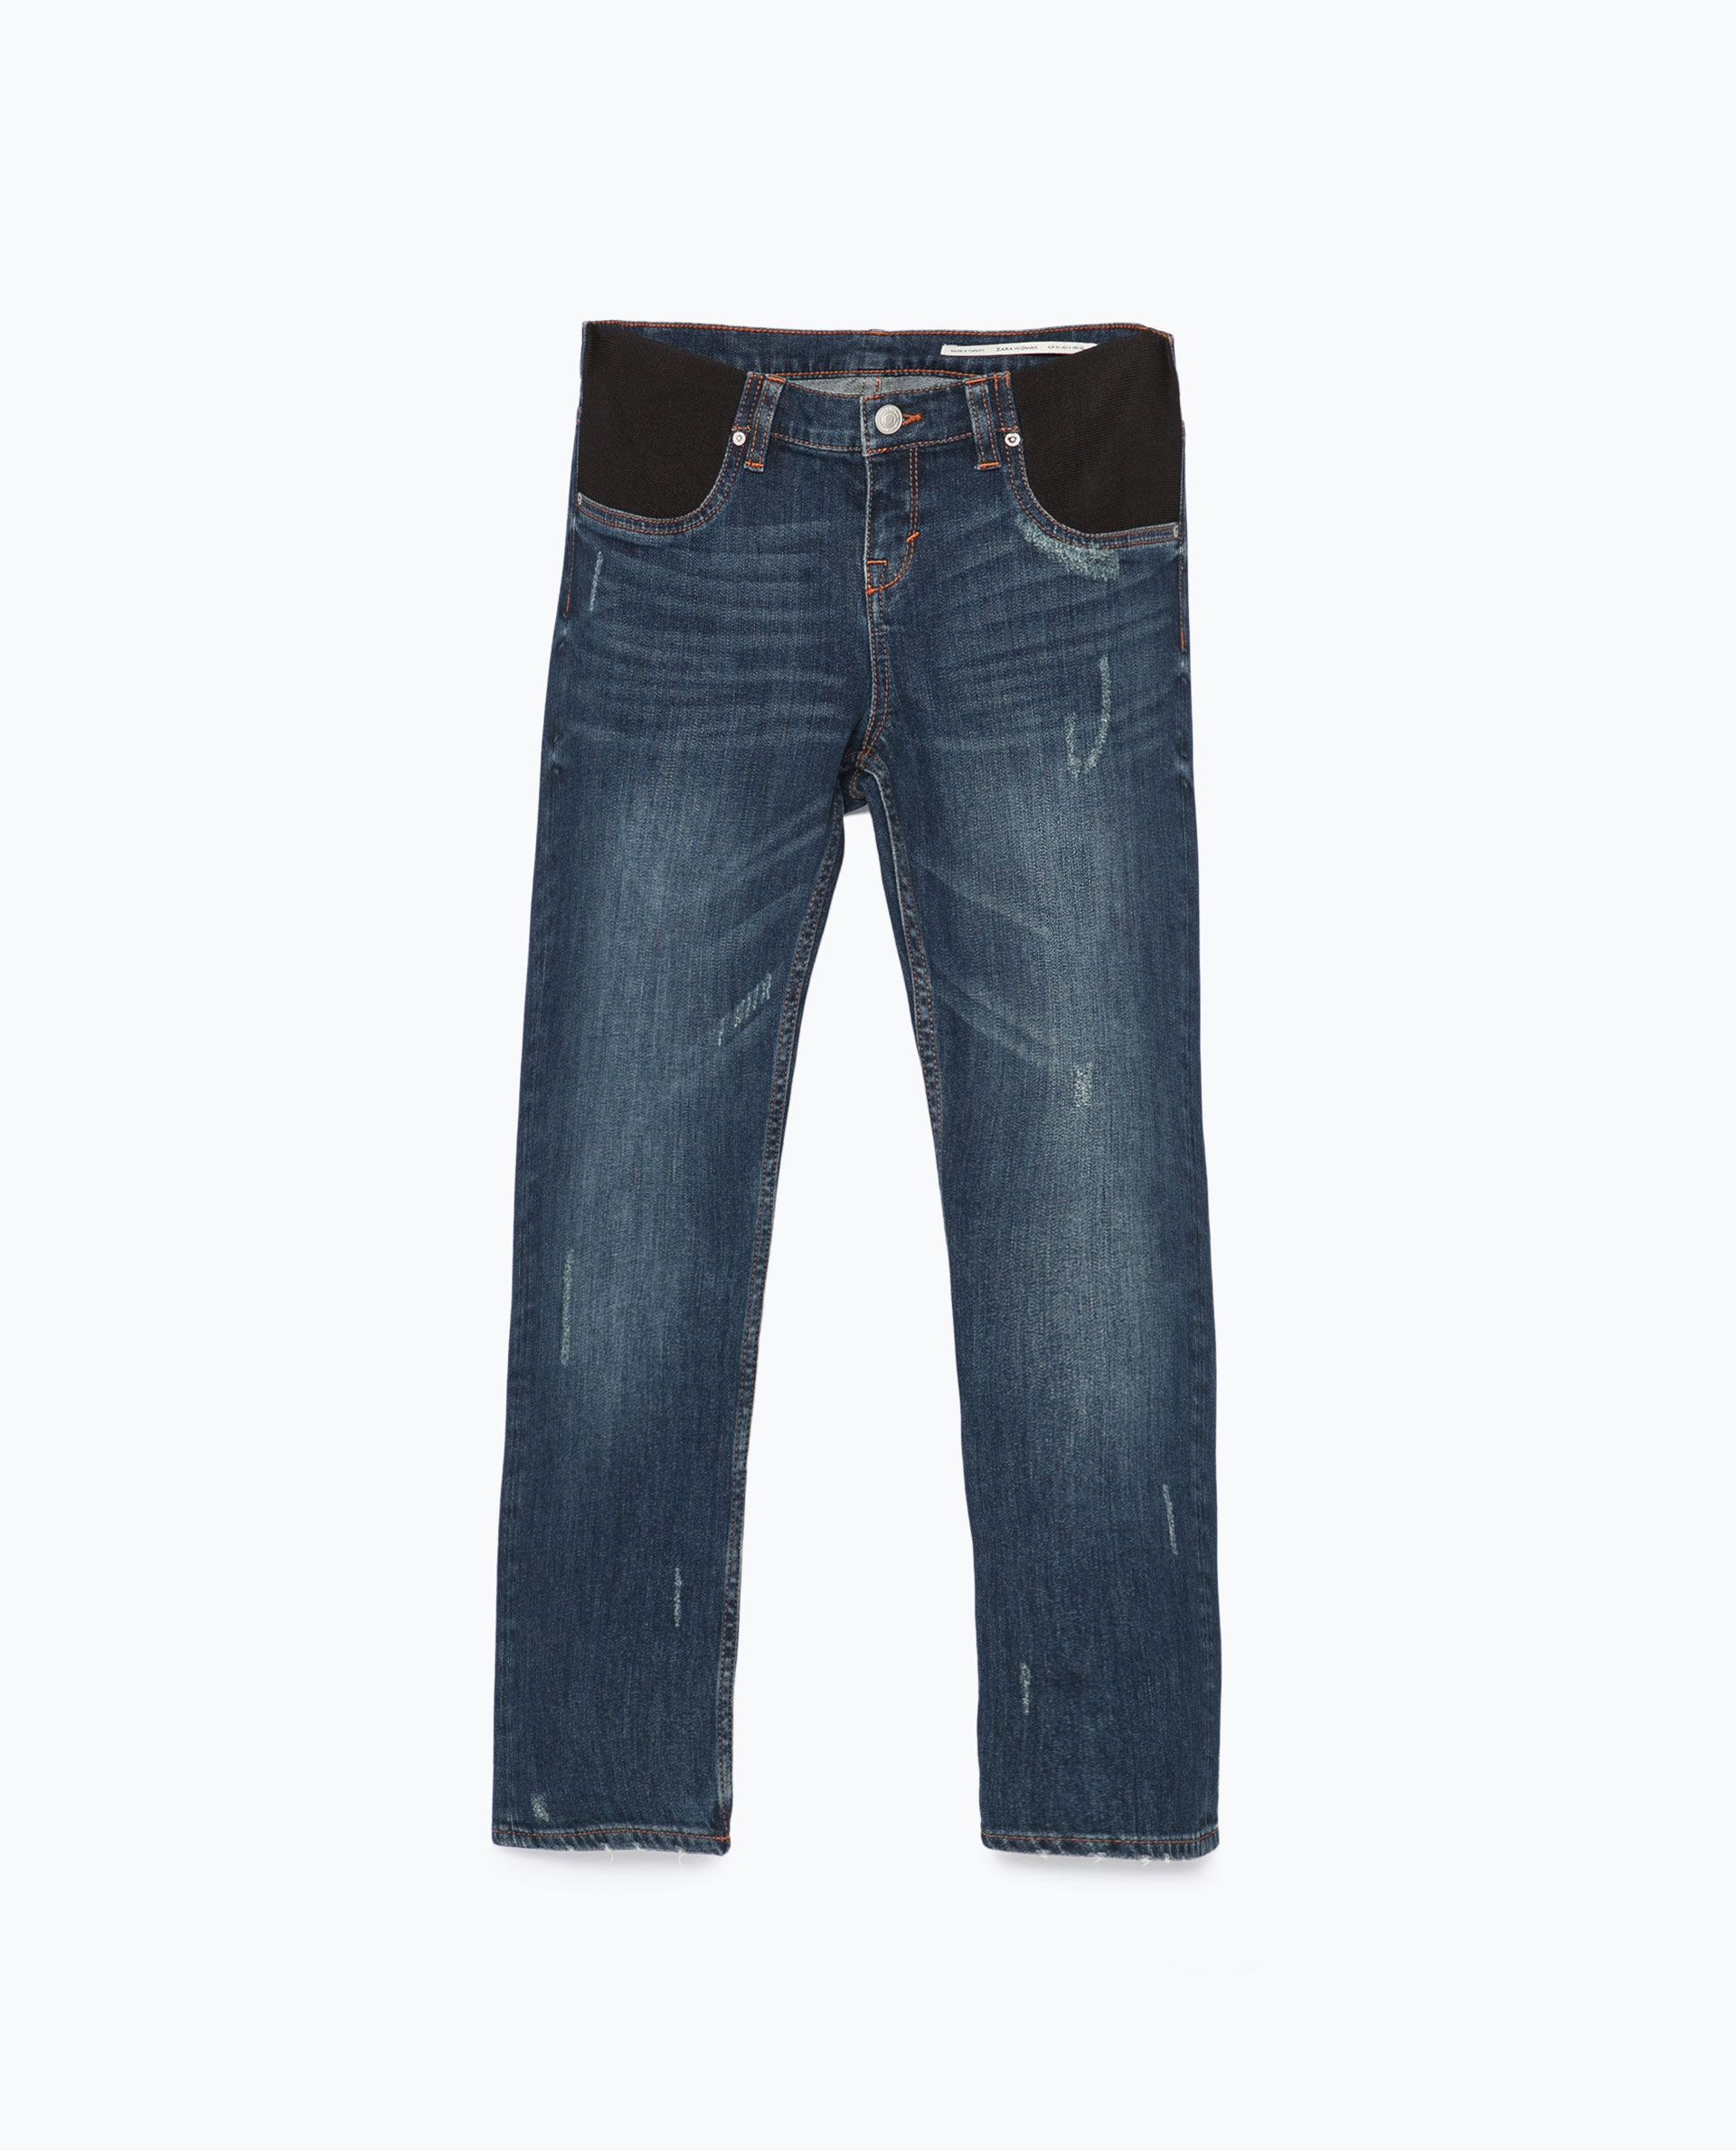 Zara Cigarette Maternity Jeans in Blue | Lyst